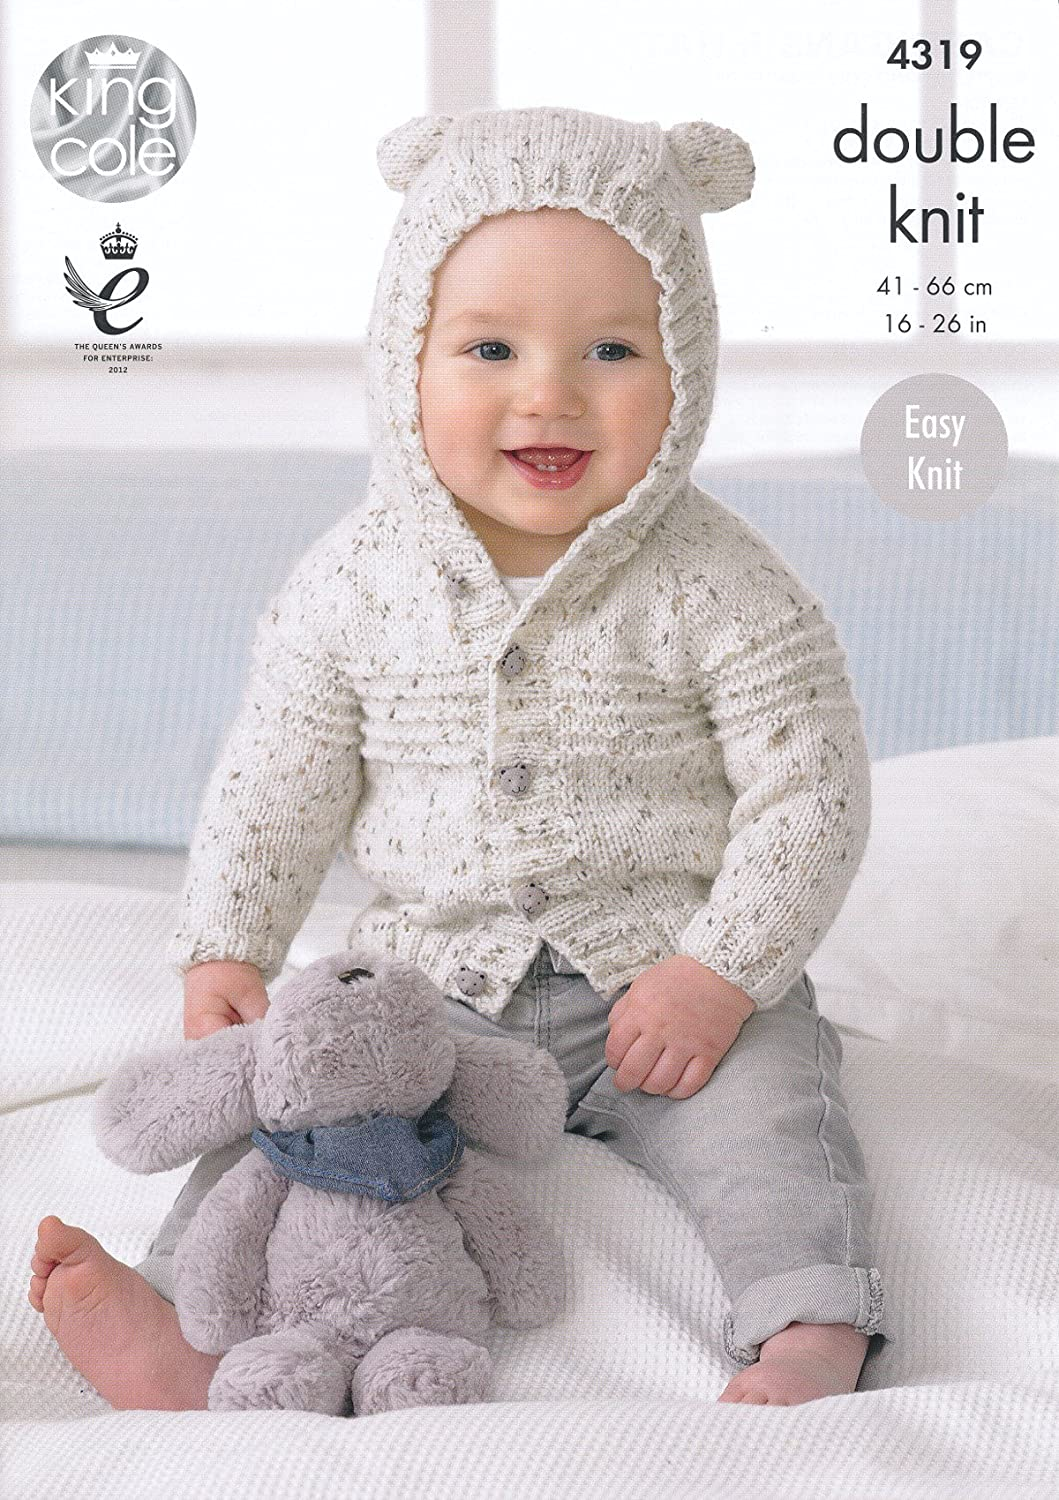 King Cole Double Knitting Pattern Baby Hooded Or Collared Cardigan